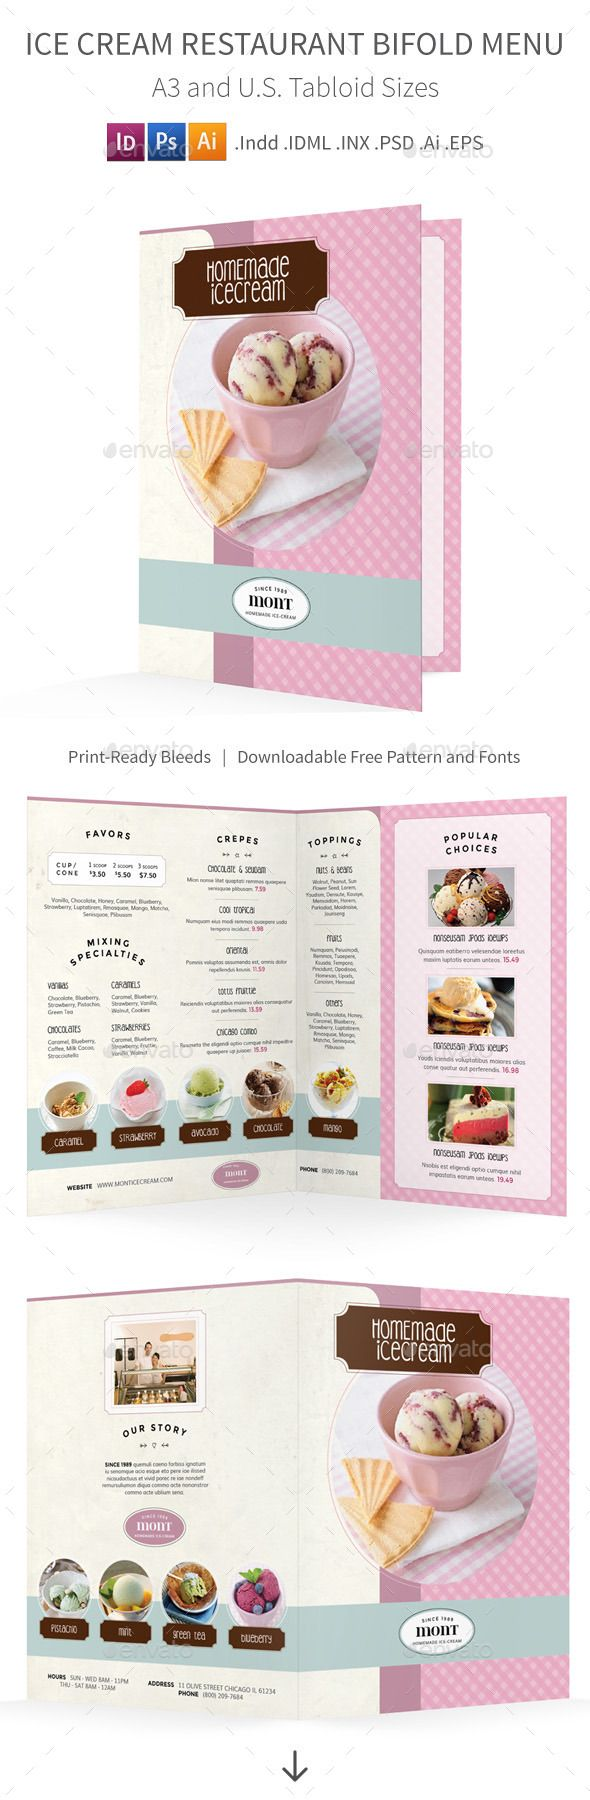 Ice Cream Restaurant Bifold / Halffold Menu Template #design #alimentationmenu Download: http://graphicriver.net/item/ice-cream-restaurant-bifold-halffold-menu/12257881?ref=ksioks